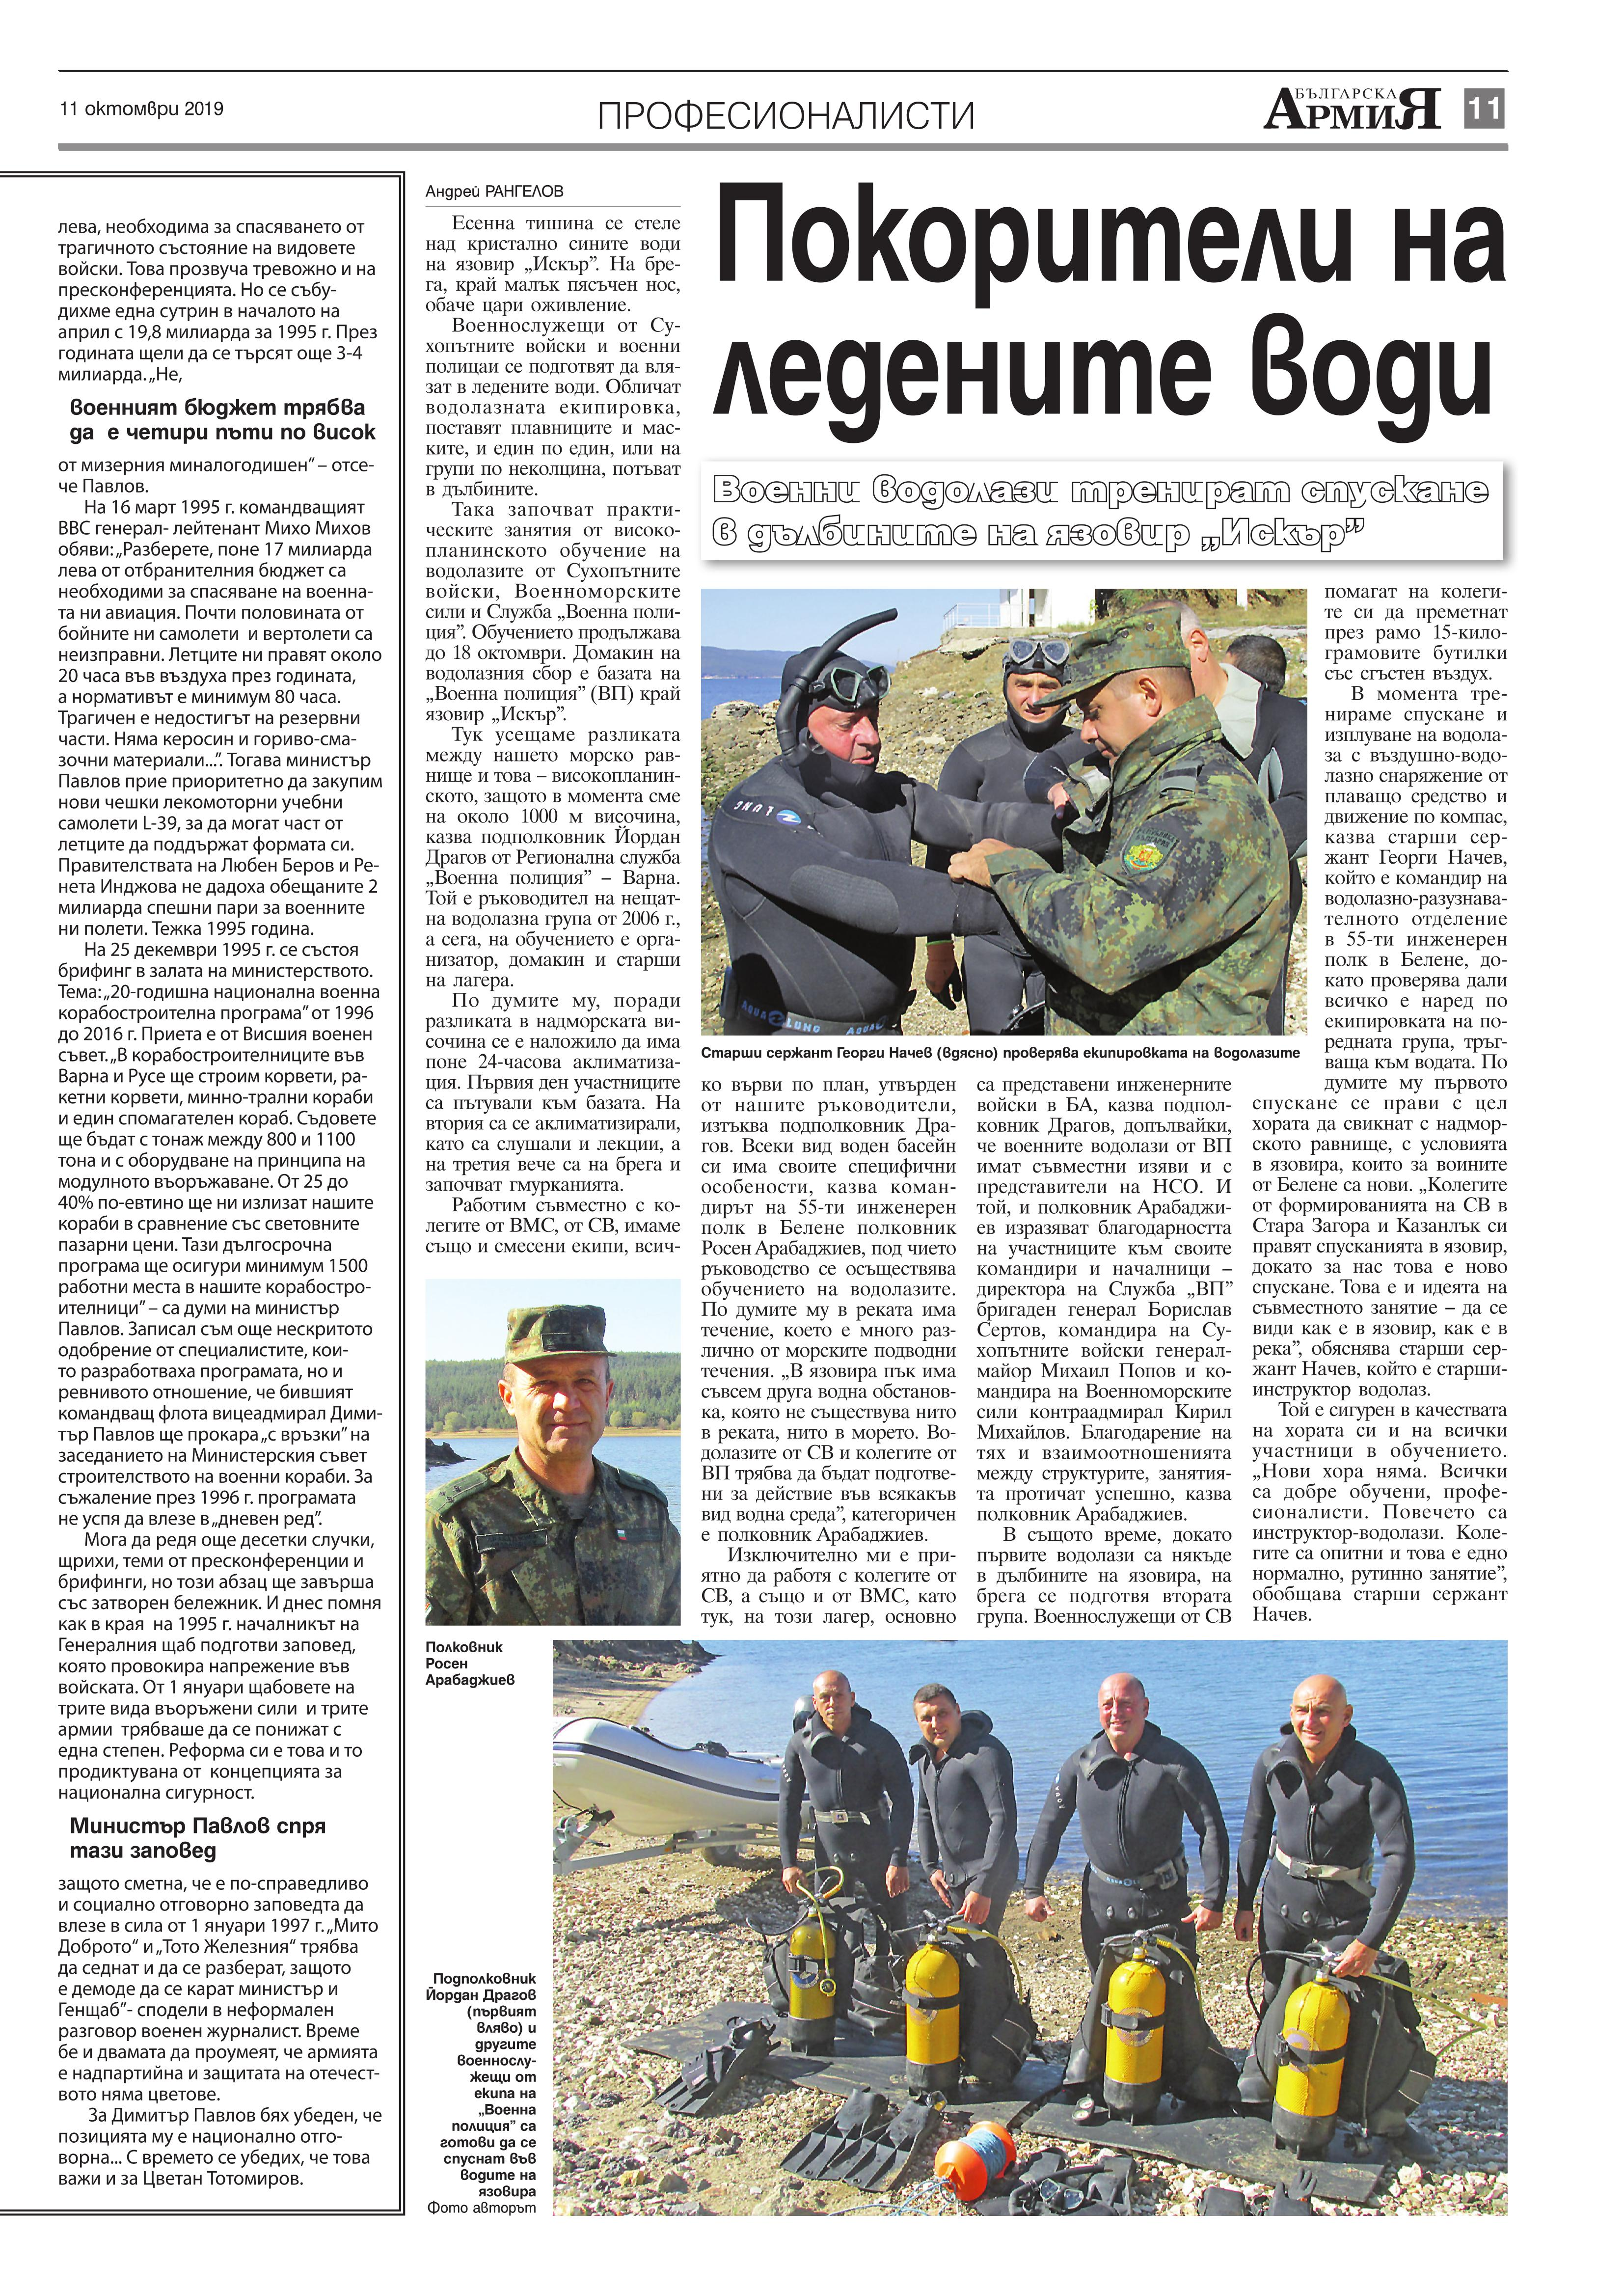 https://armymedia.bg/wp-content/uploads/2015/06/11.page1_-111.jpg